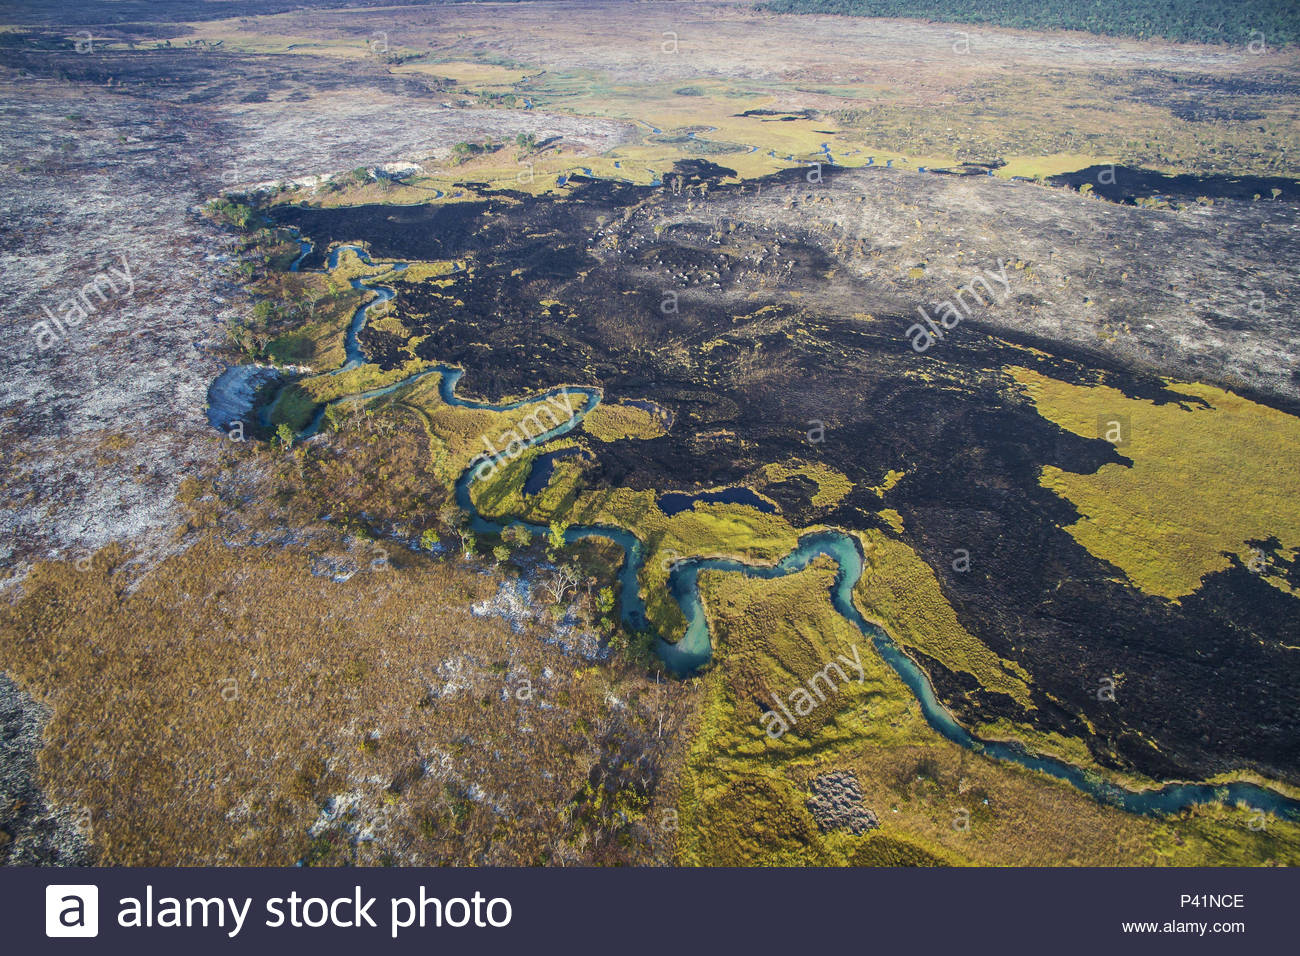 A controlled burn along the winding Cuito River in the Angolan Highlands. - Stock Image